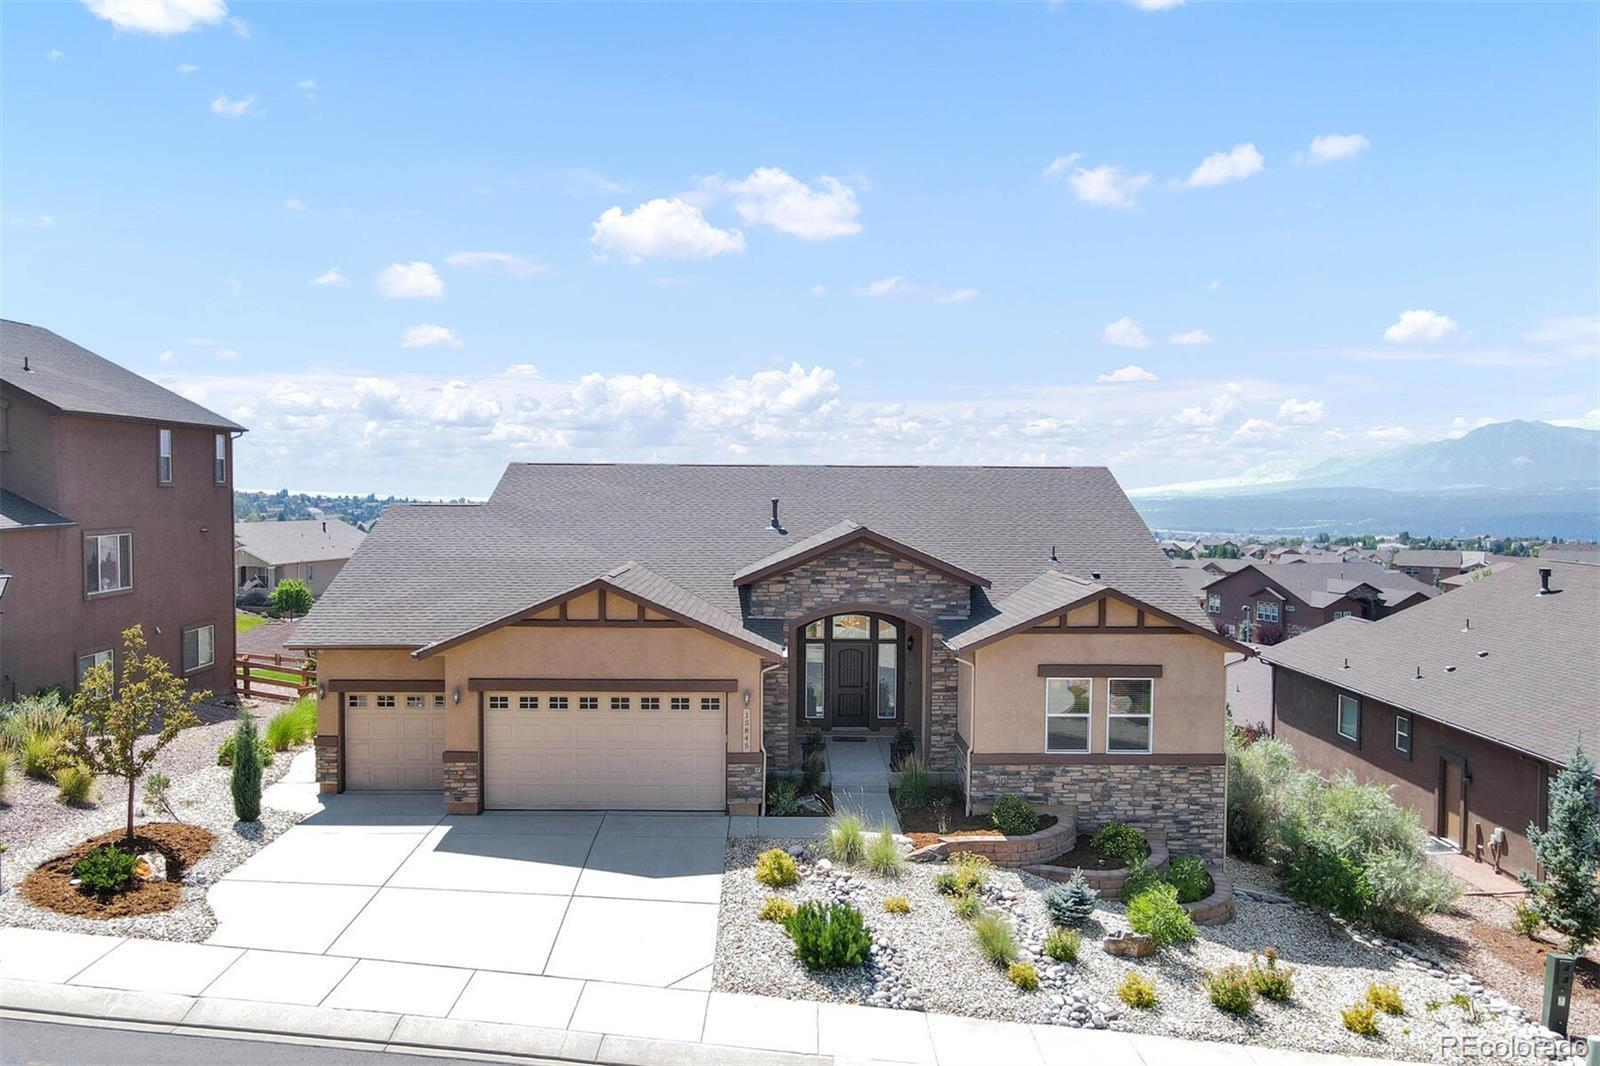 15845 Transcontinental Drive, Monument, CO 80132 - #: 5062159